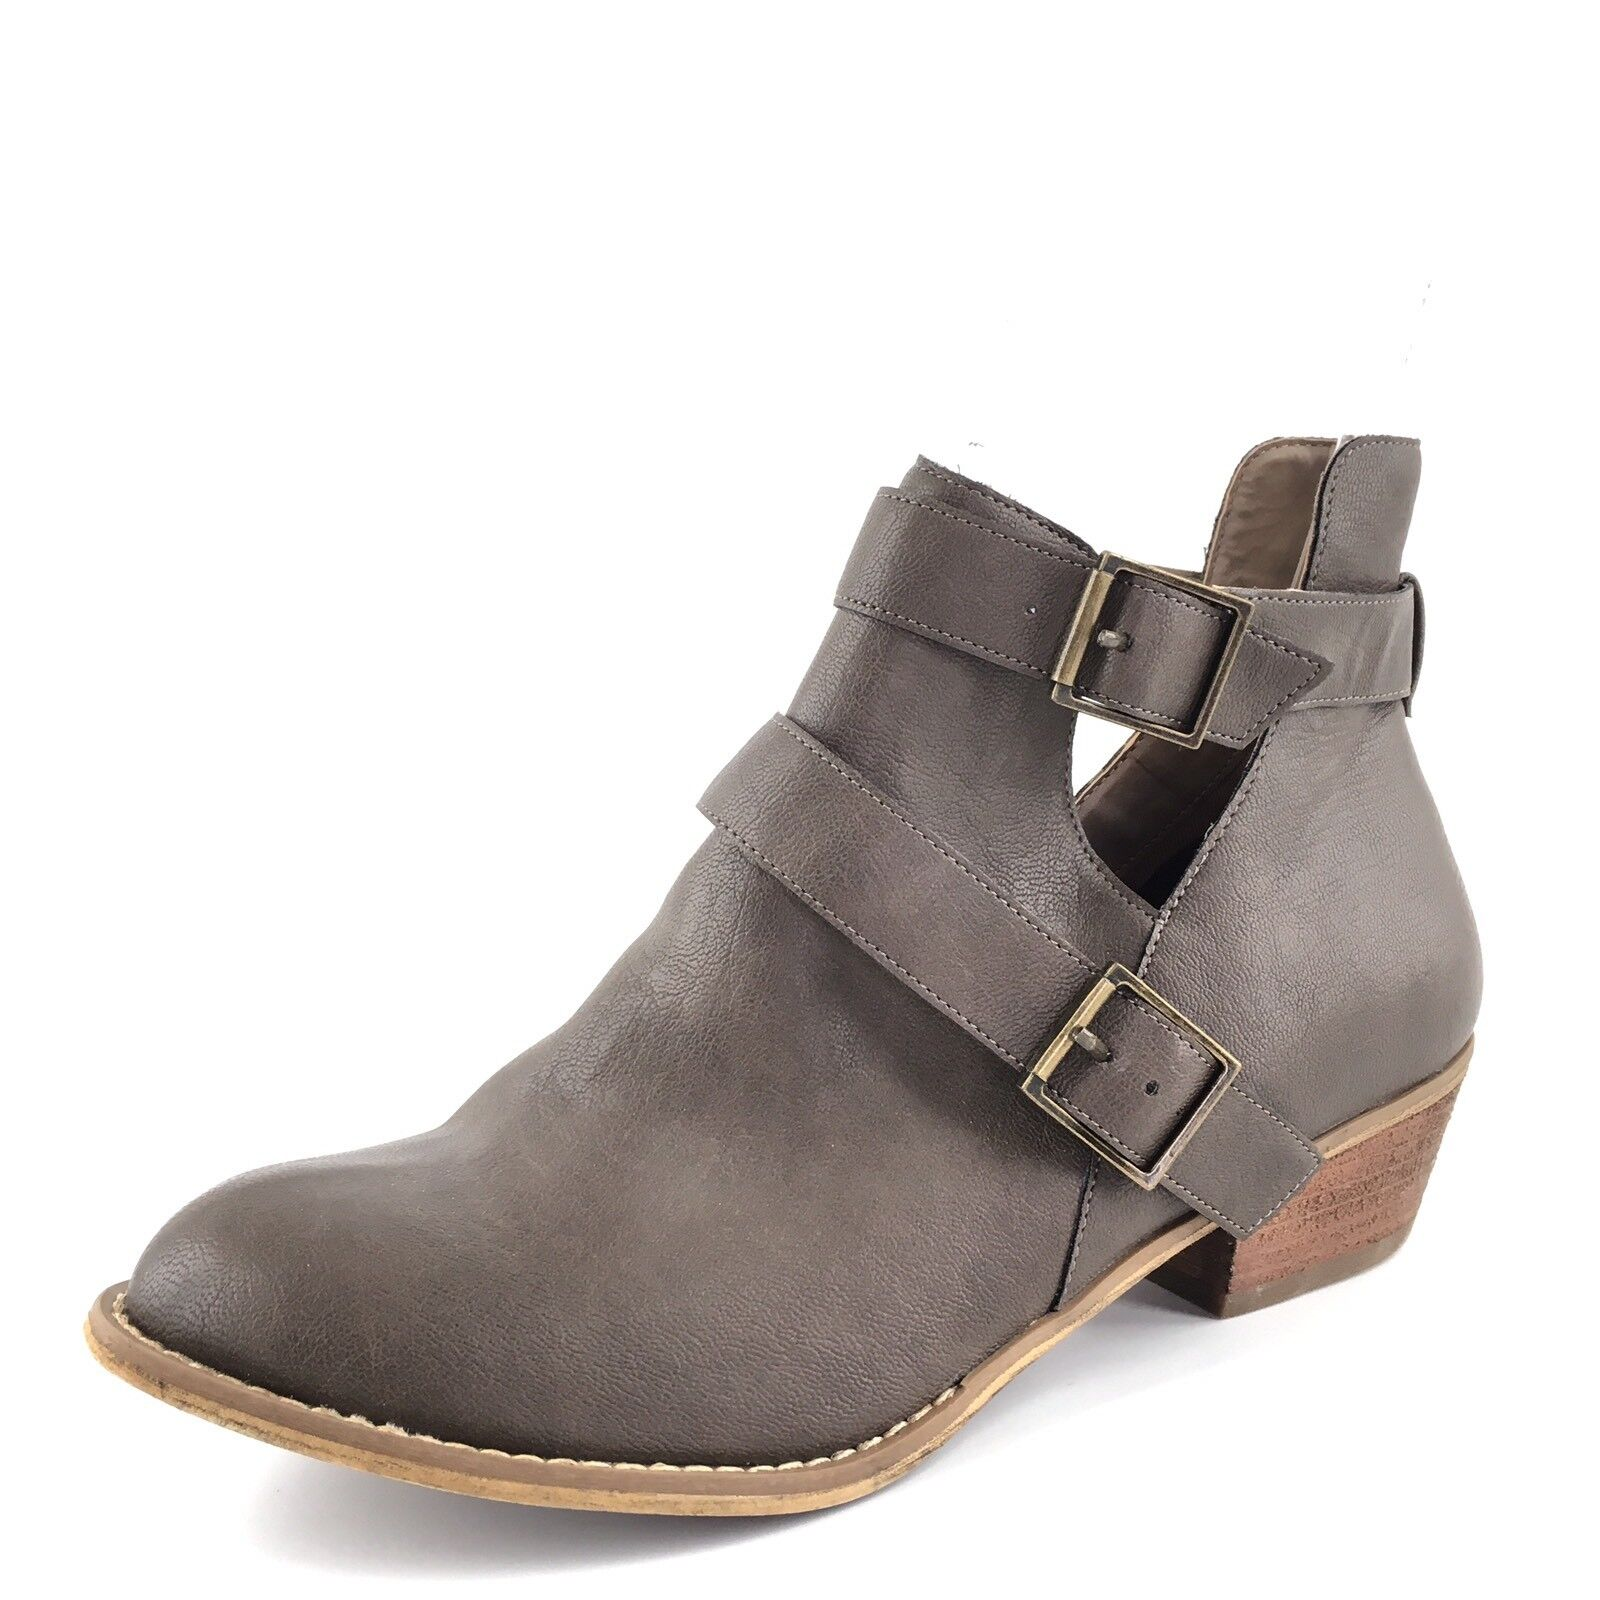 e3aa6e0b602bac Abound Pepper Rounded Gray Rounded Pepper Toe Ankle Boots Women  s Size 9 M  ...